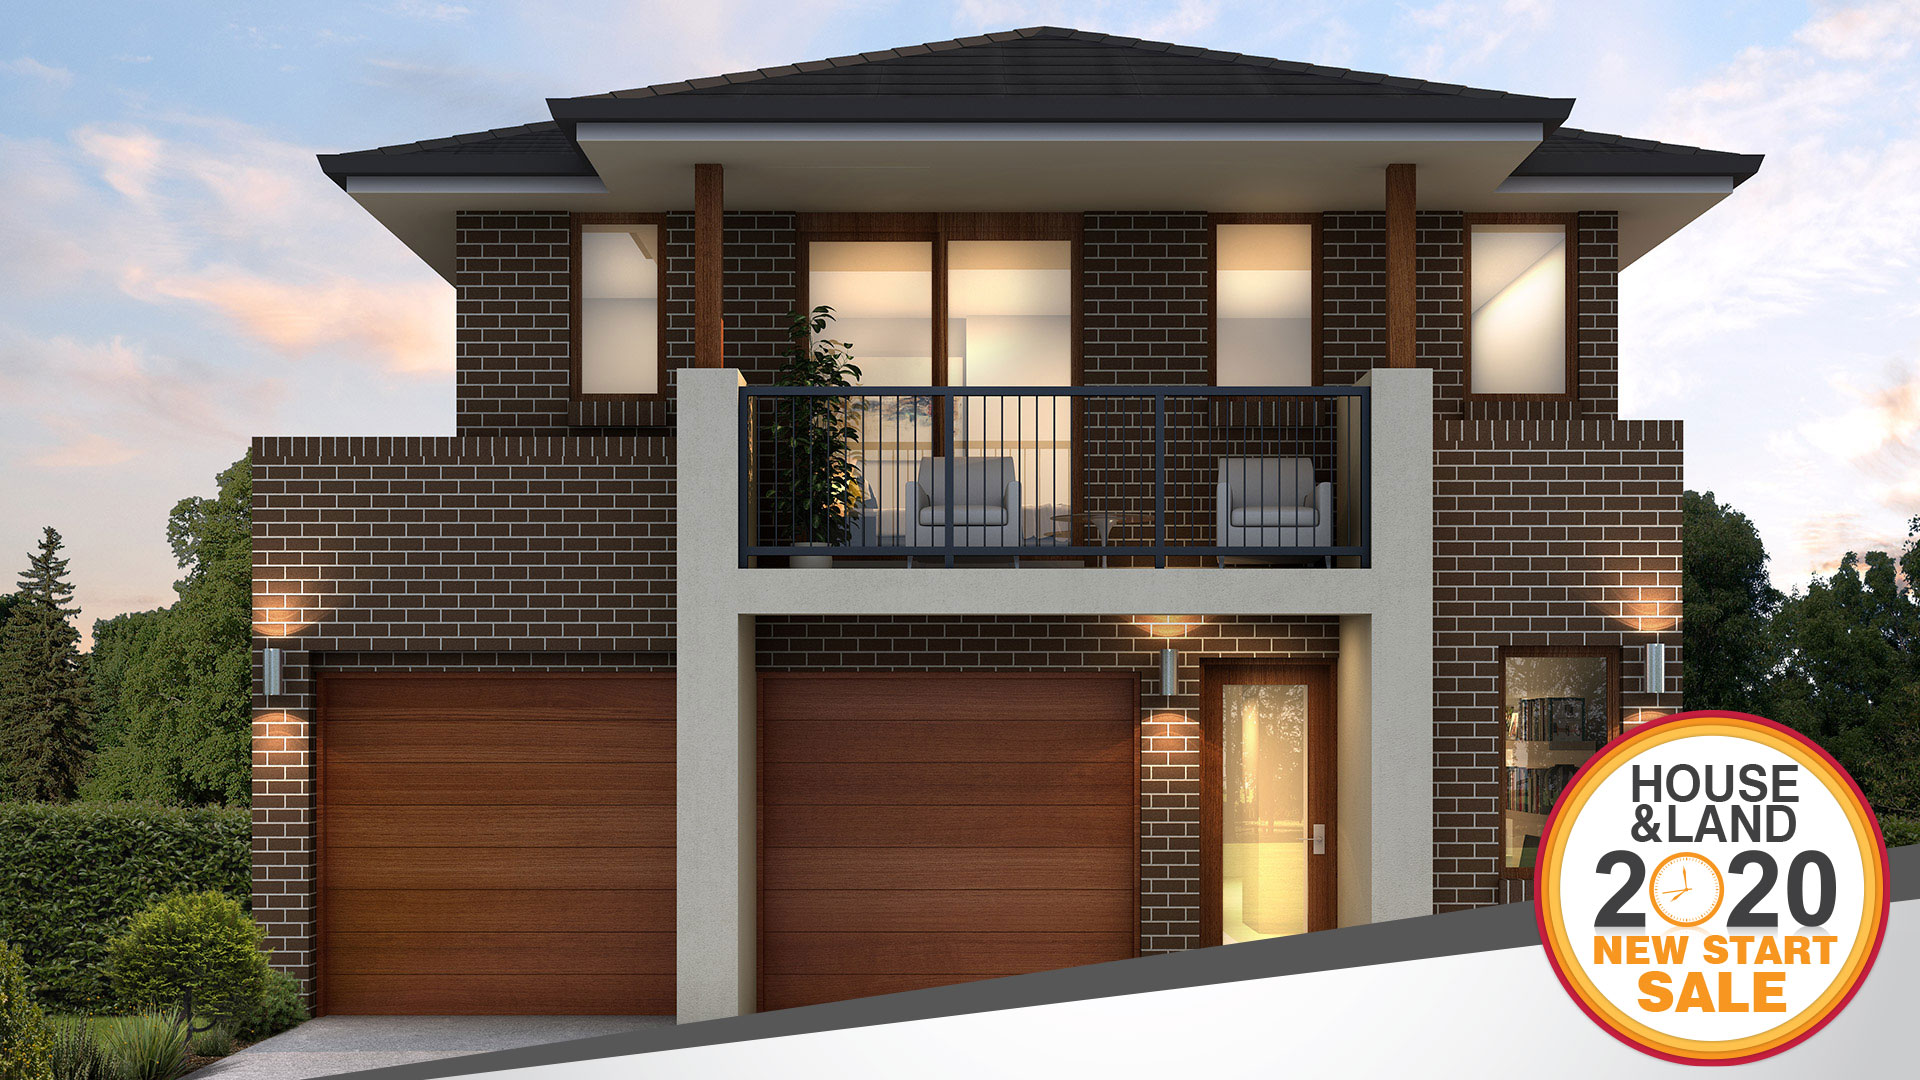 400 House Land New Start Sale WebsiteImages OranPark4044